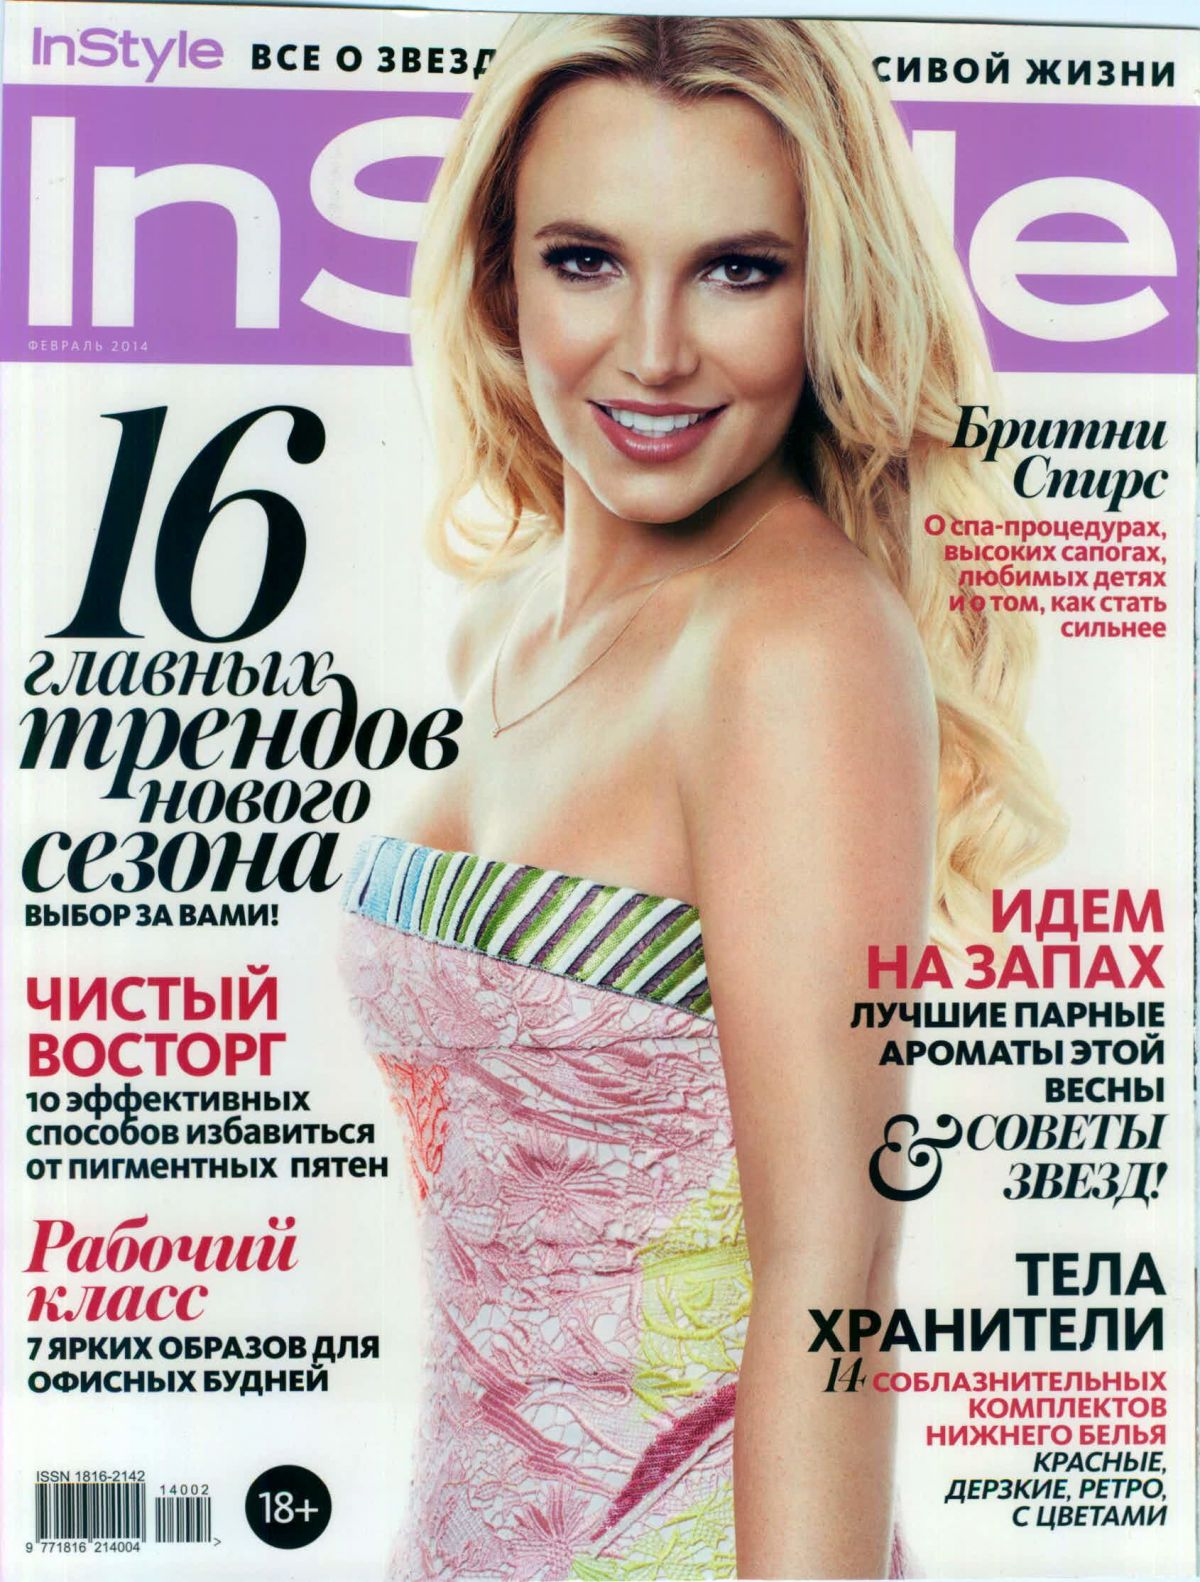 BRITNEY SPEARS in Instyle Magazine, Russia, February 2014 Issue